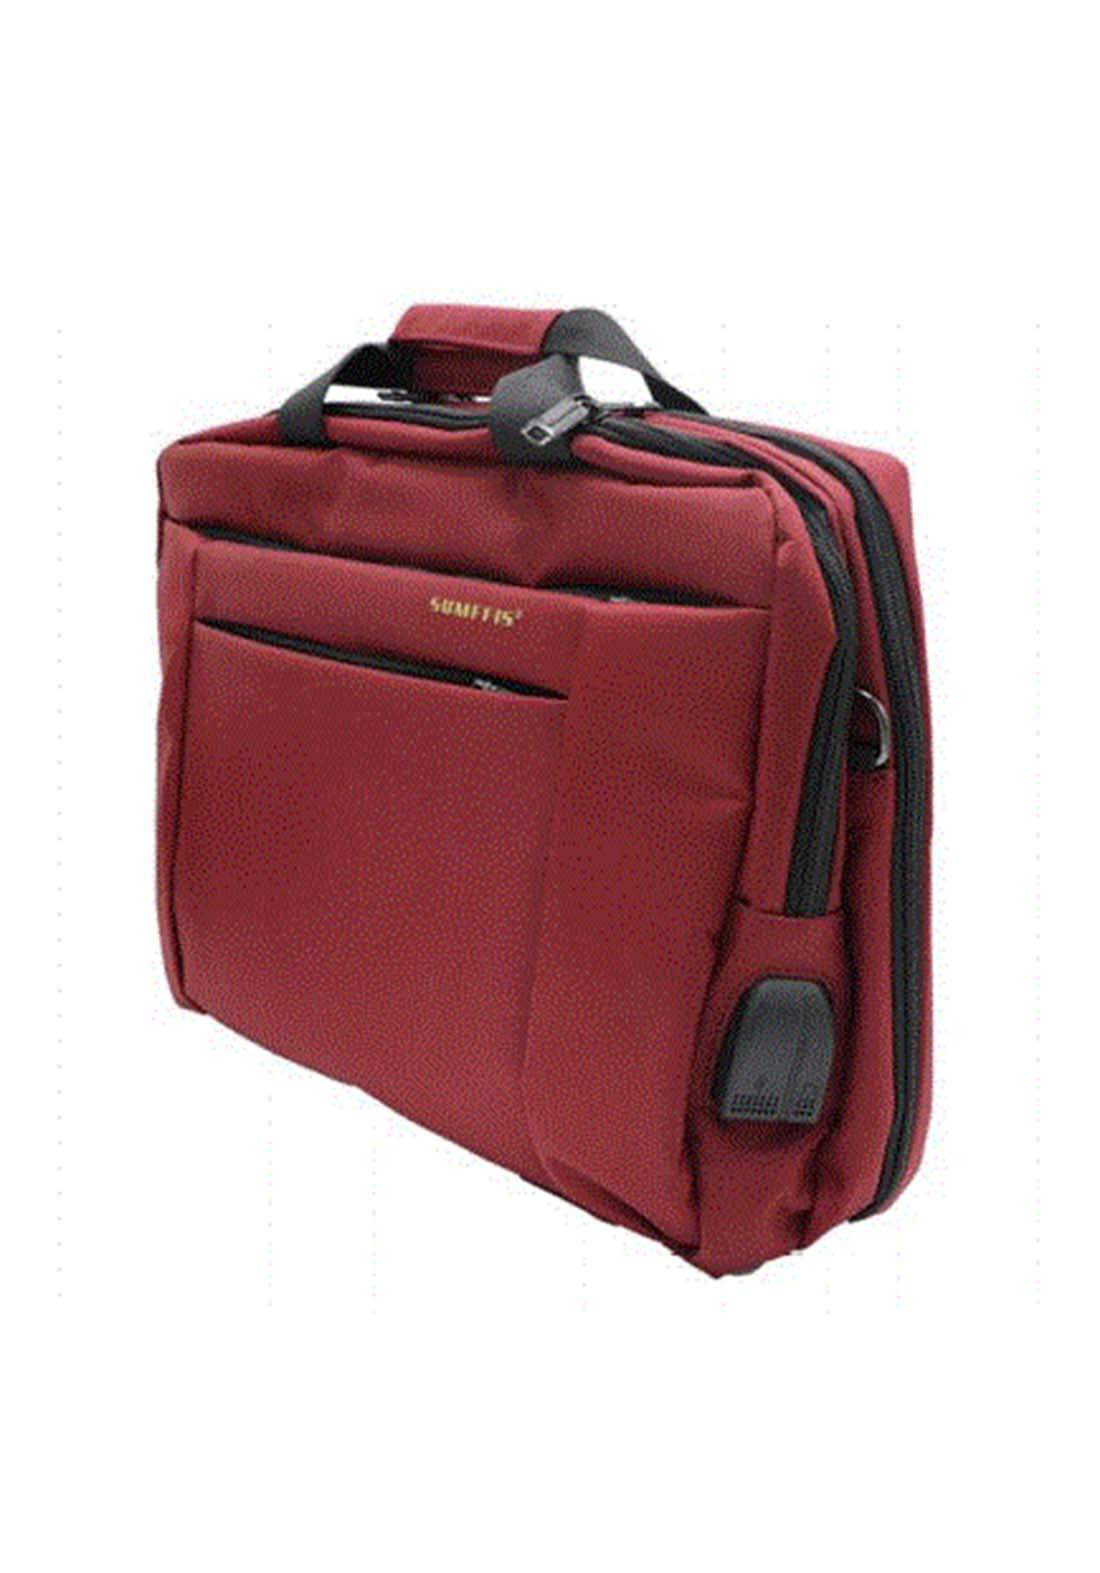 2 in 1  (USB & AUX) and laptop Bag 9160 - Red حقيبة لابتوب